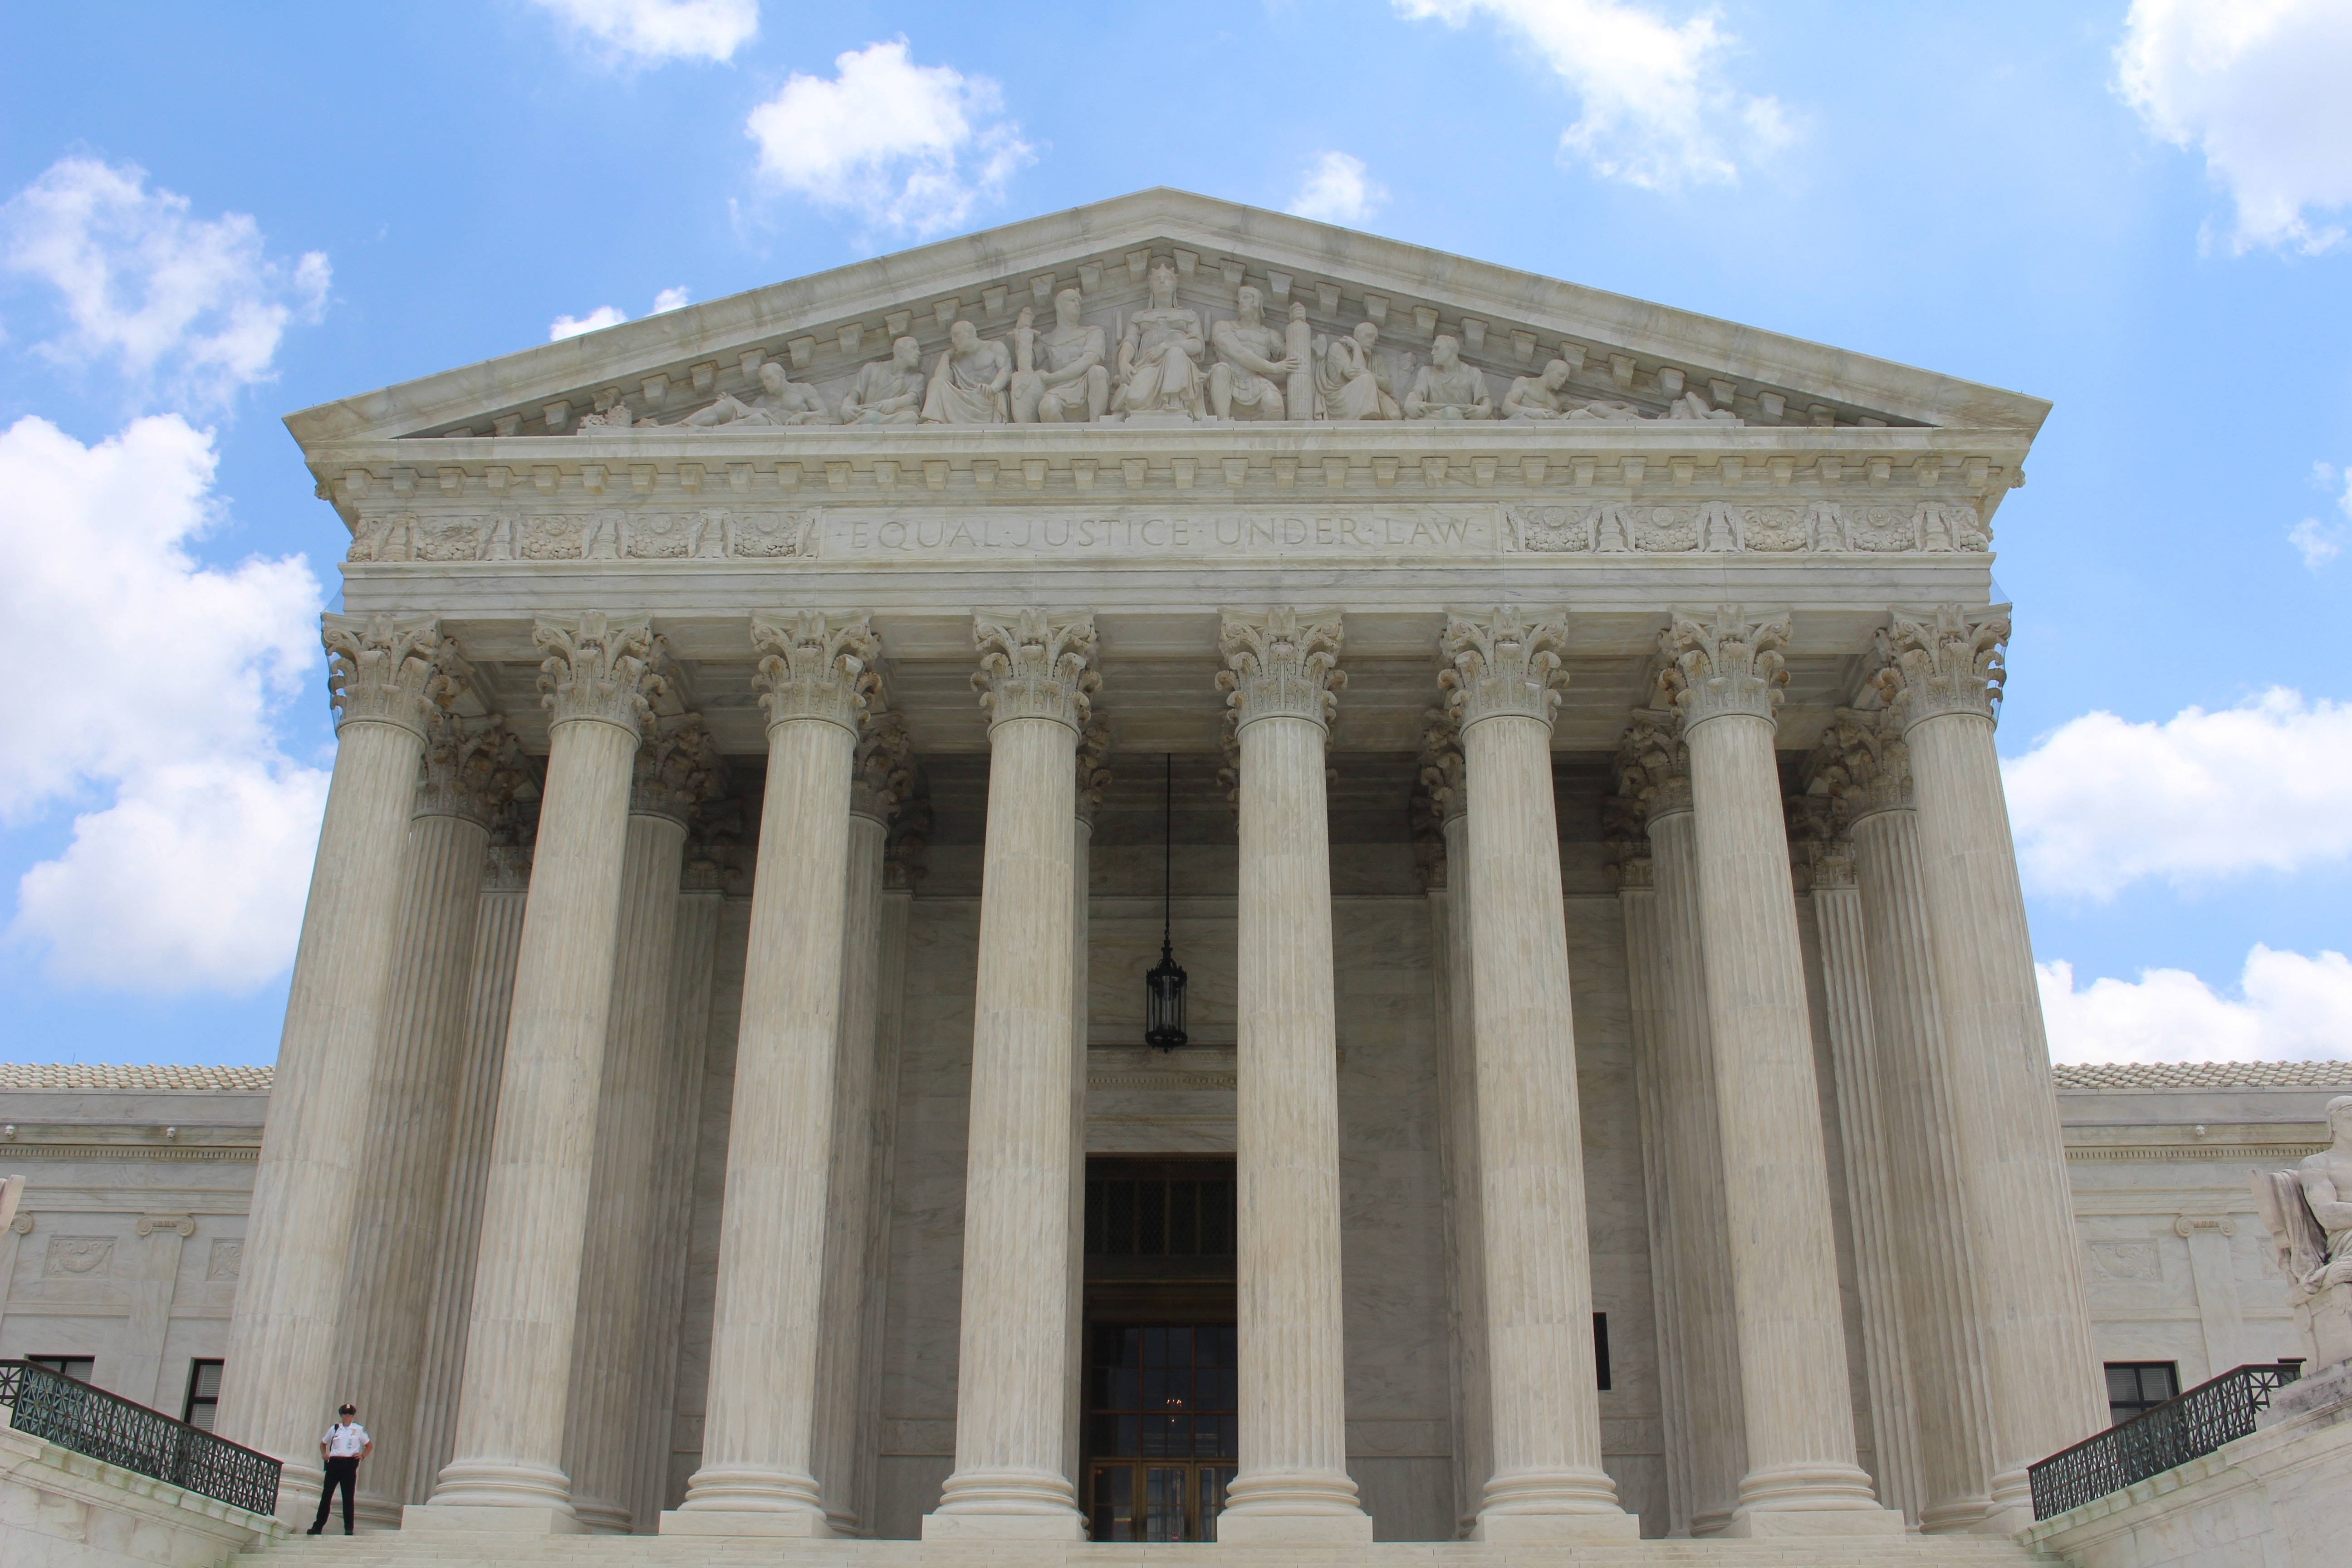 Travel ban upheld by Supreme Court